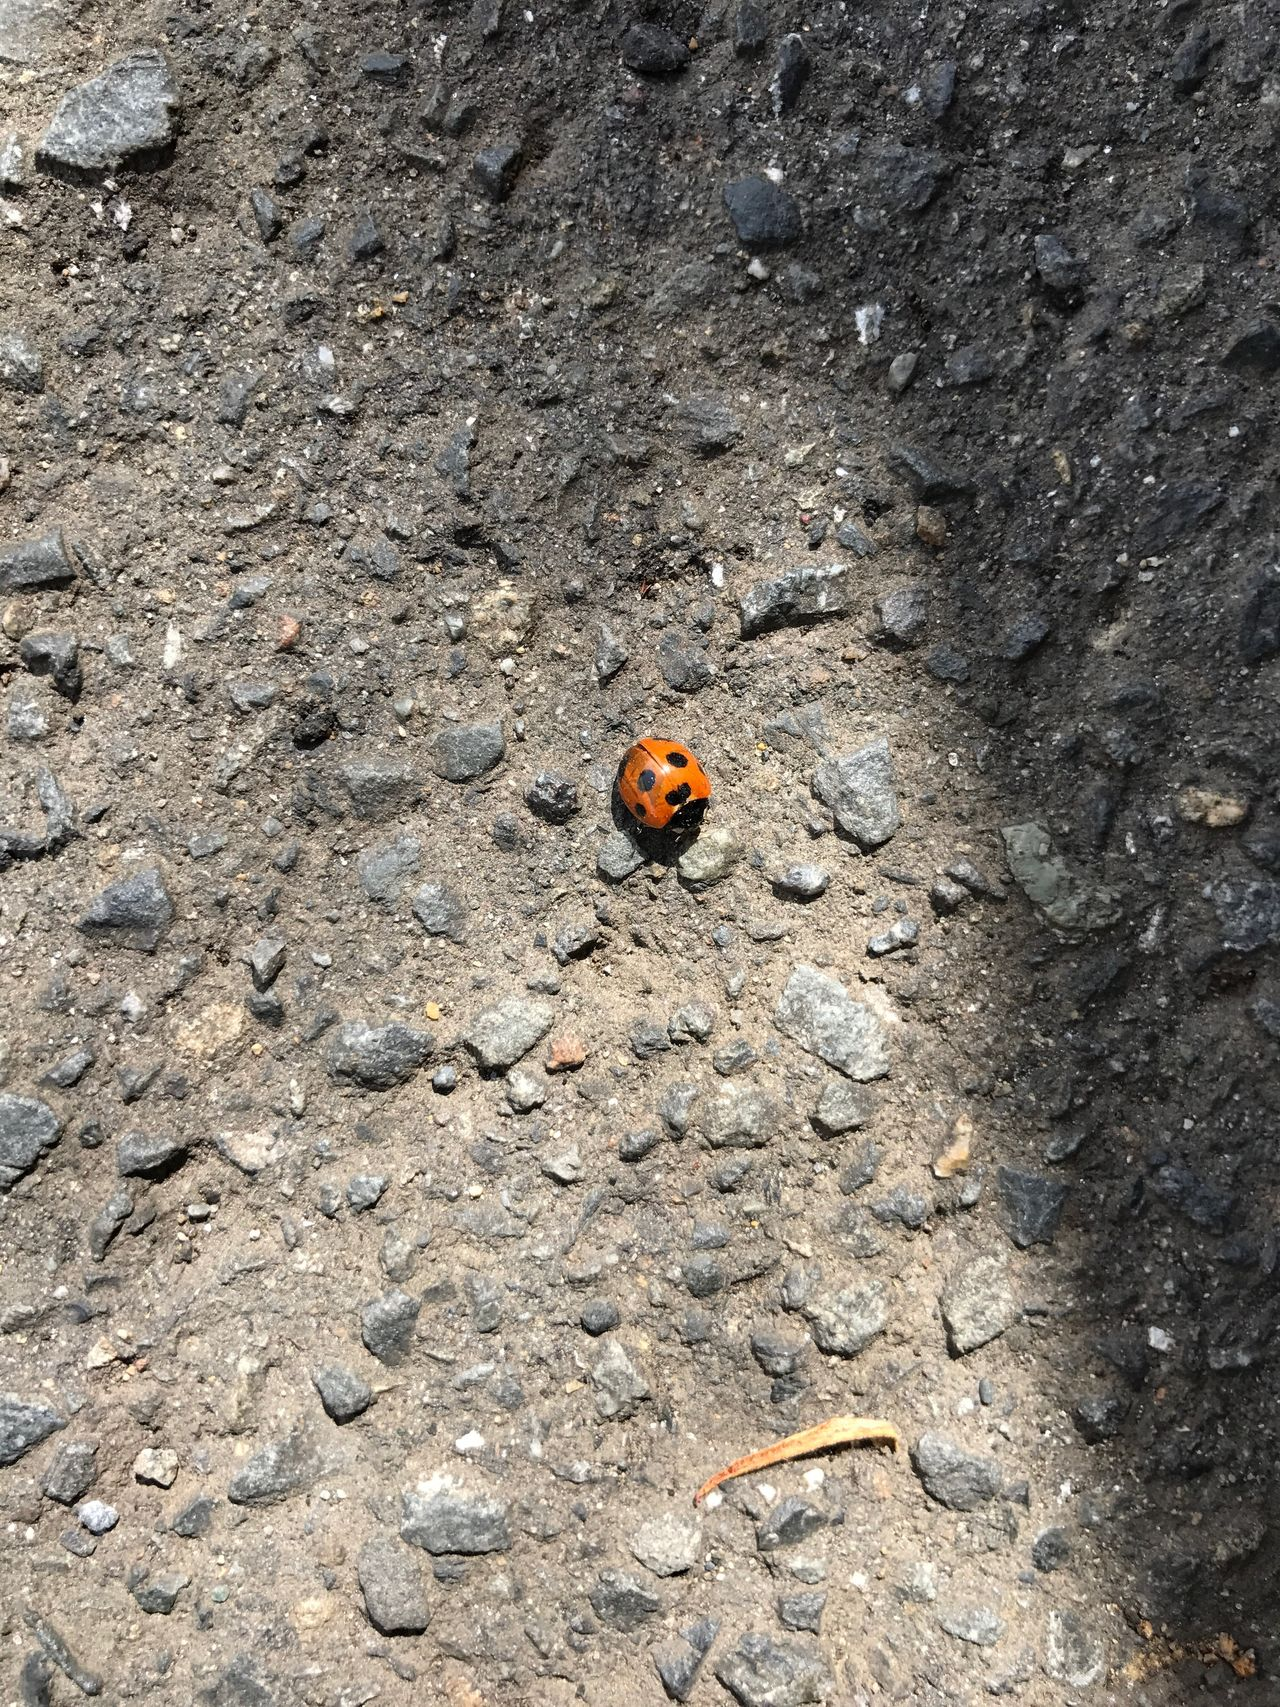 One Animal Animal Themes Insect Animals In The Wild High Angle View Wildlife Day Outdoors No People Ladybug Animal Wildlife Nature Tiny Close-up Ladybird Ladybeetle